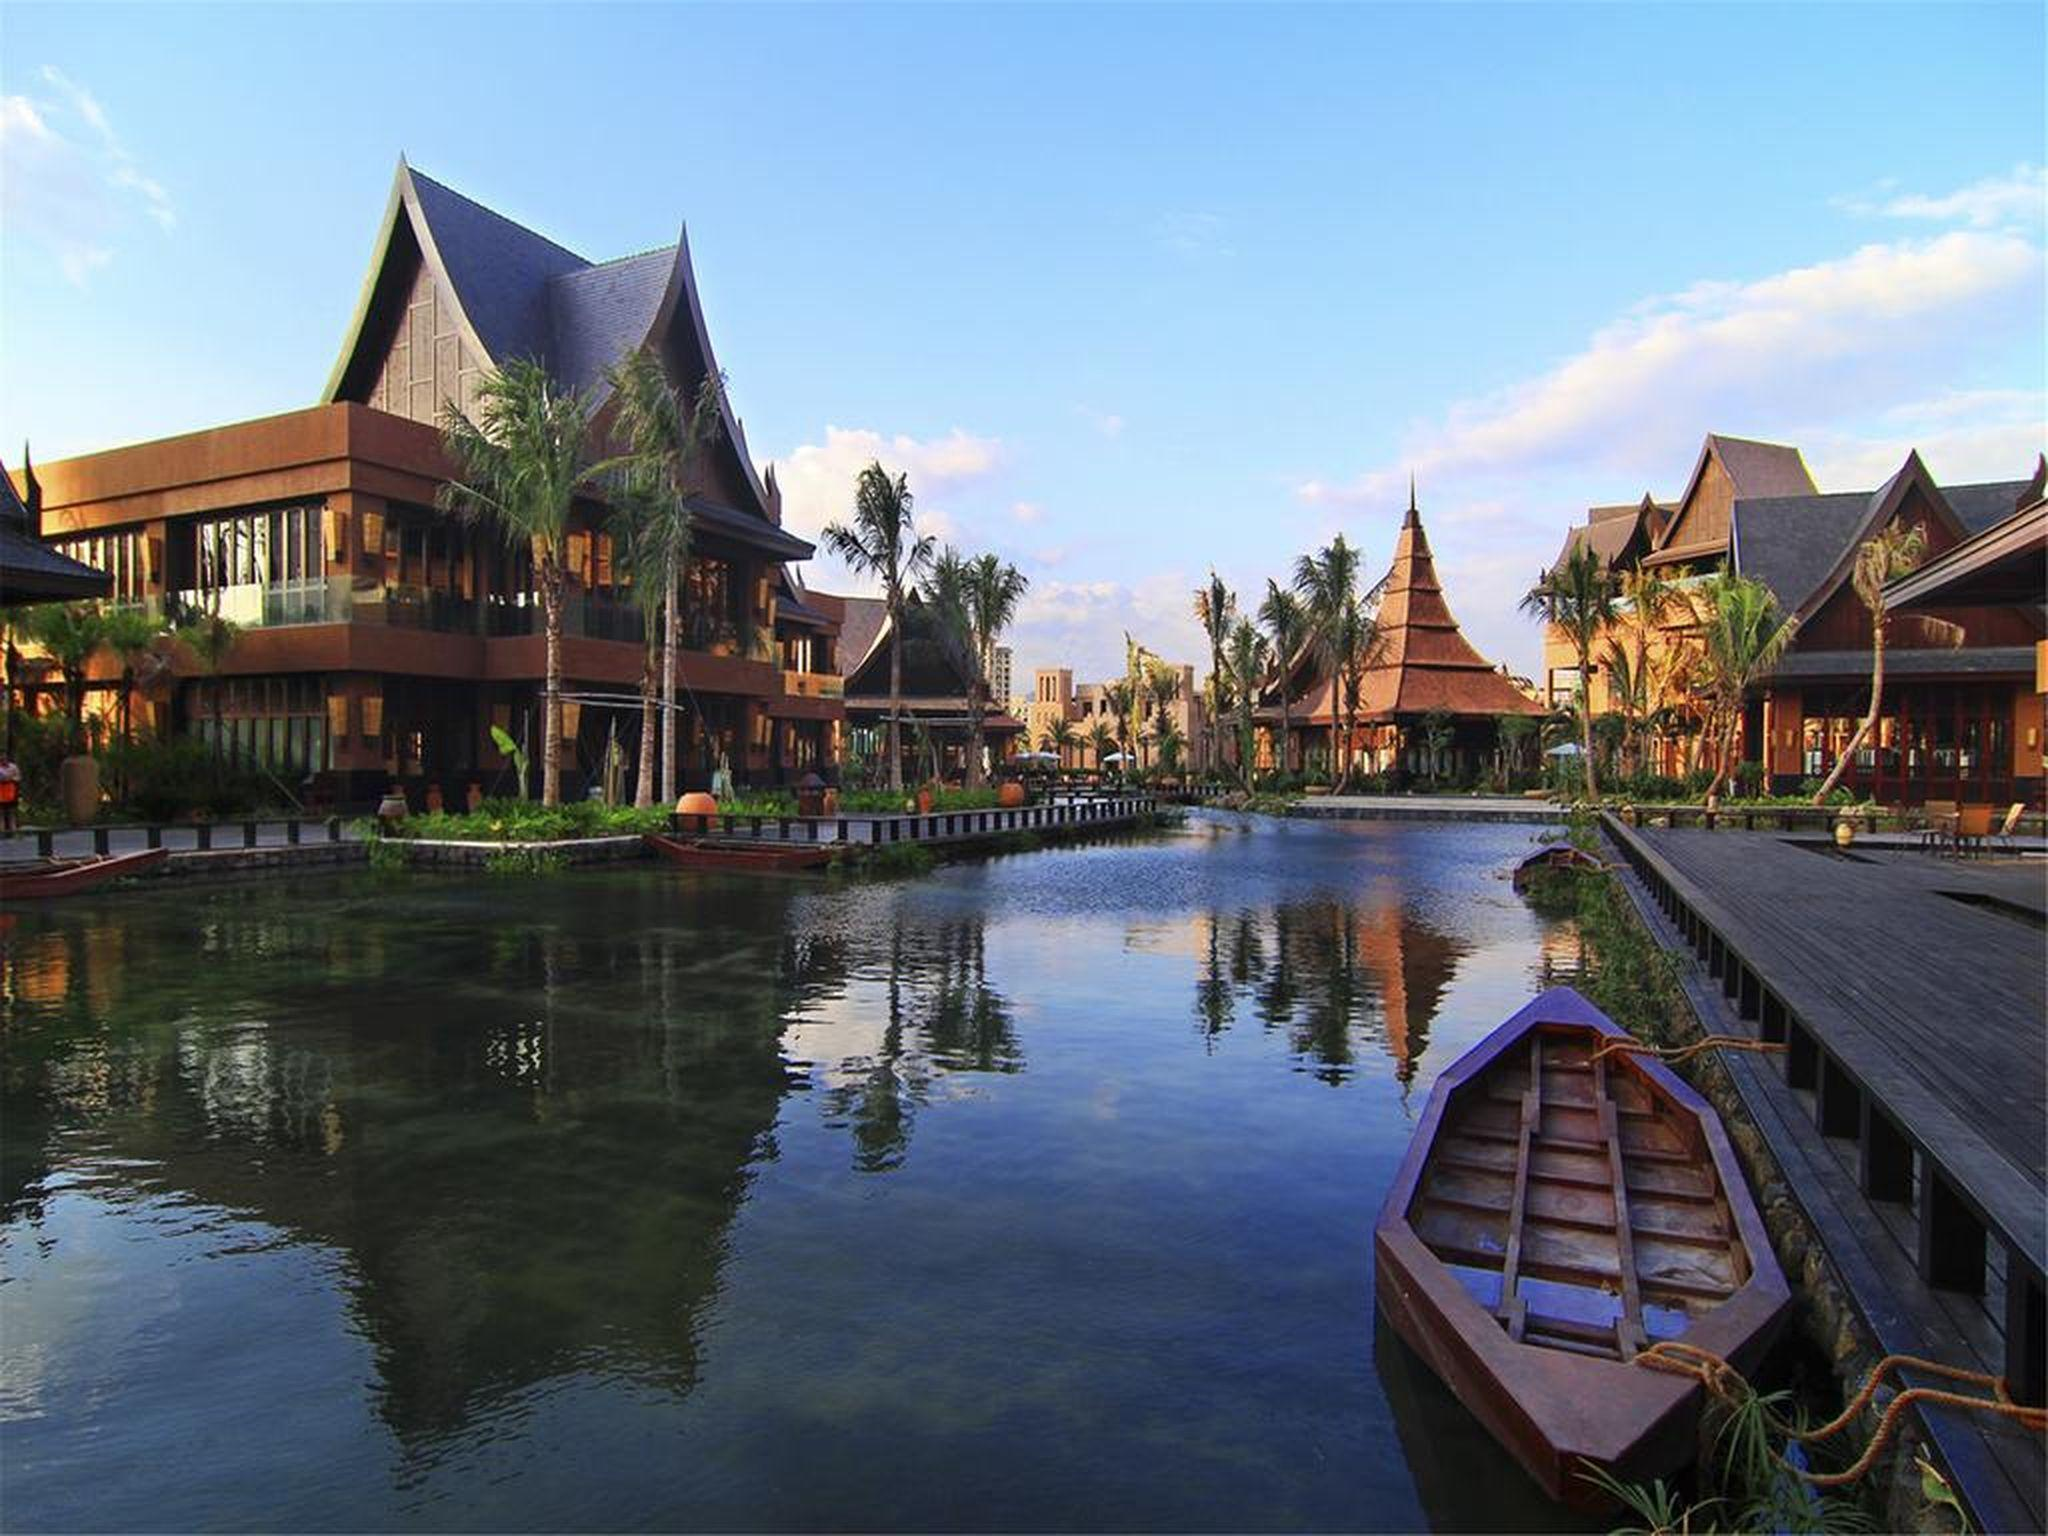 Mangrove Tree Resort World Sanya Bay Queen Palm Tower – Review, Pictures, Rates and Deals